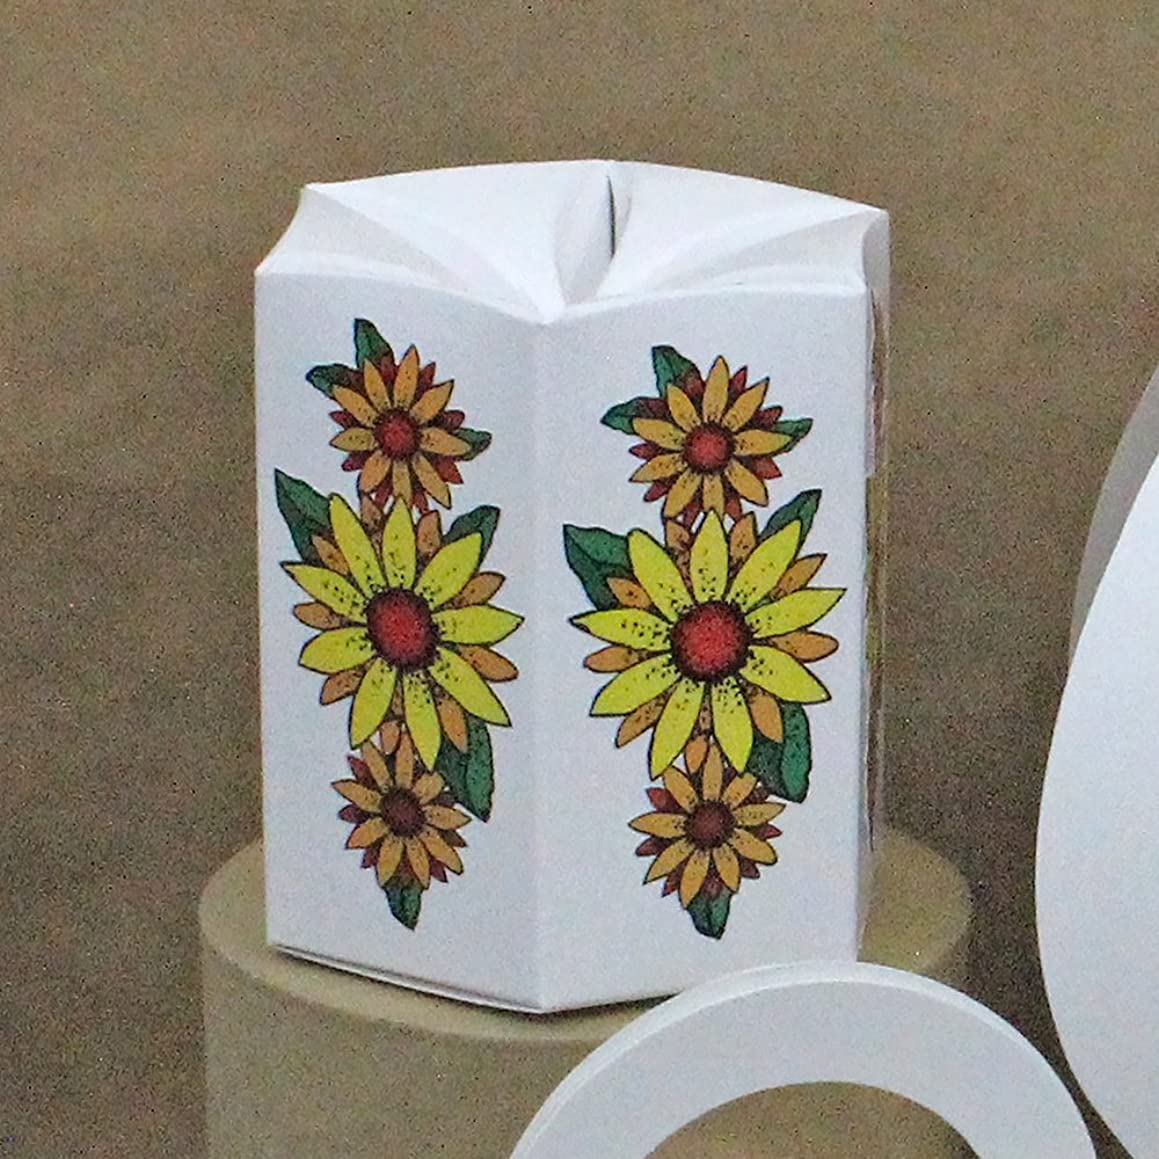 Four Sunflowers Design Favor Boxes, Candy Boxes, Treat Boxes, Treasure Boxes, Gift Boxes, Party Supplies, Shower Favor Boxes